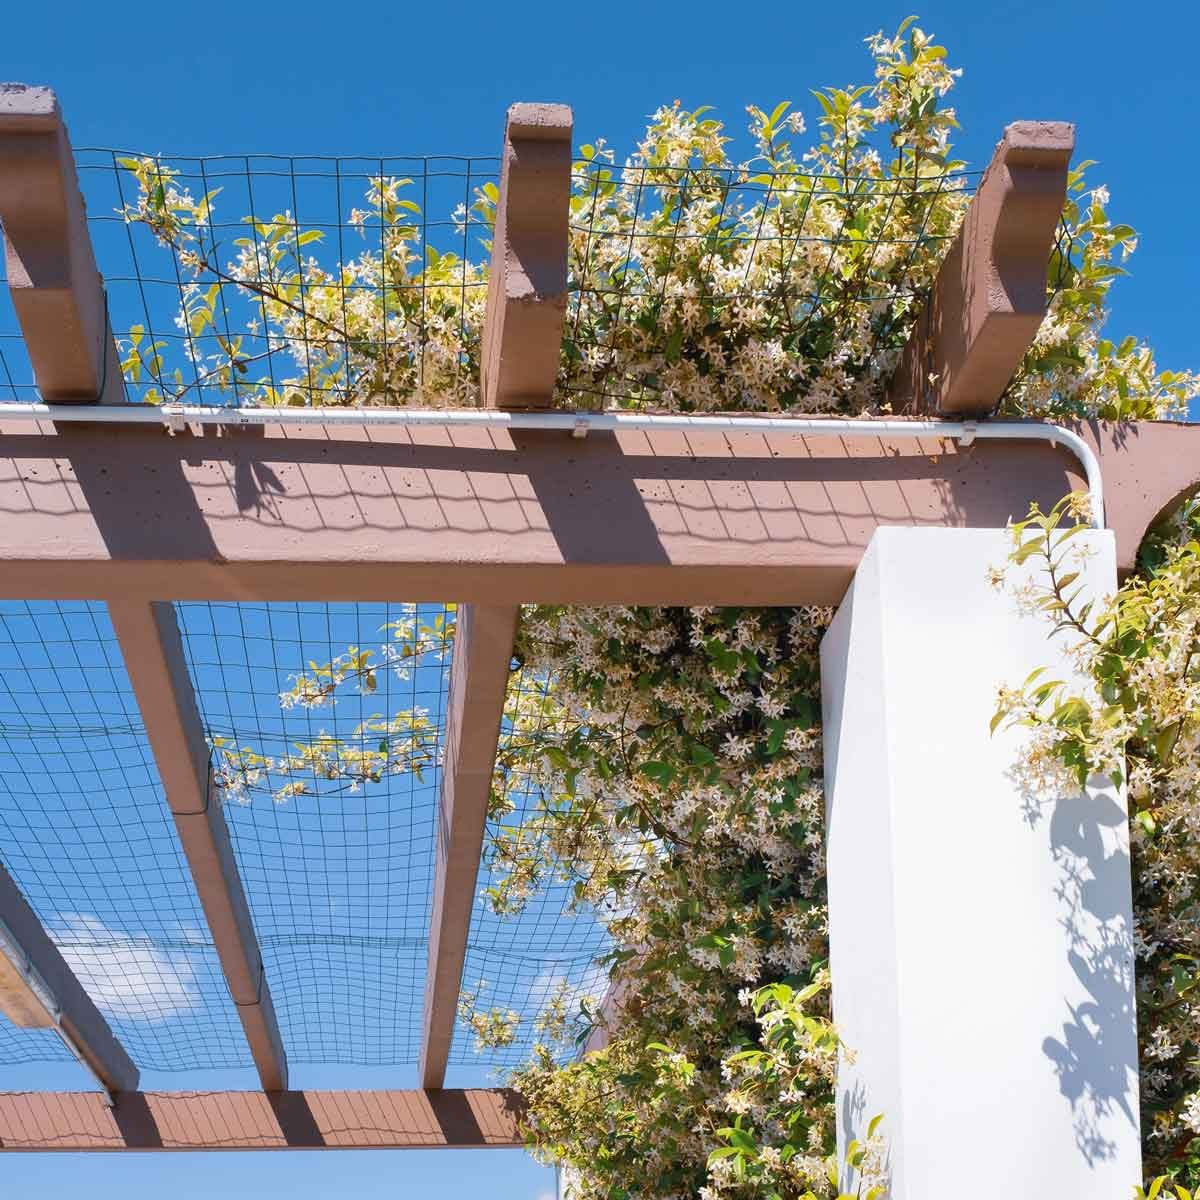 Pergola with wire and jasmine flowers